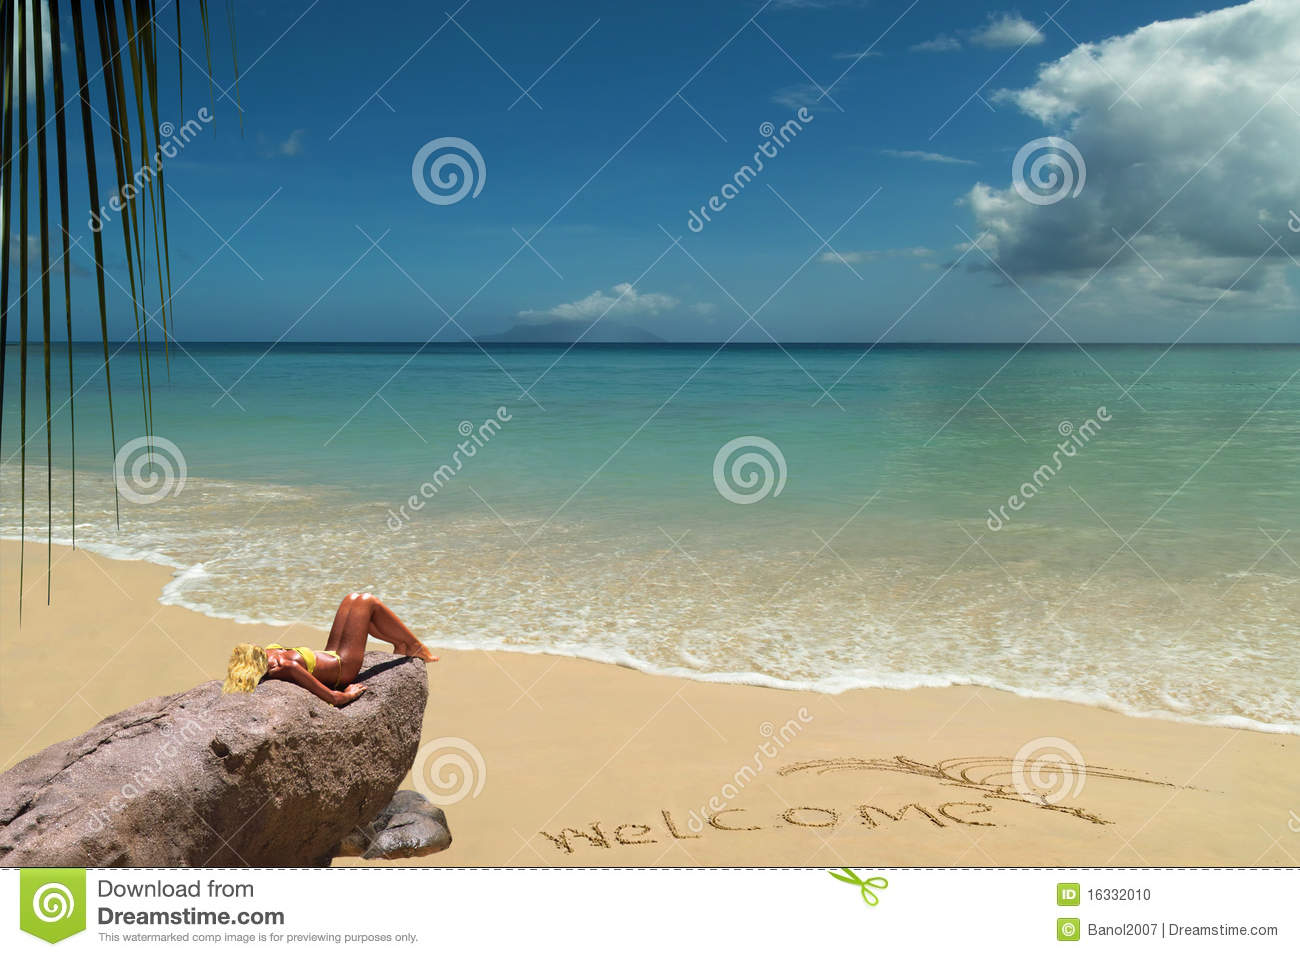 Tanning Blond Model On Welcome Beach Stock Photo  Image. Quality Assurance Consulting. Oki Printer Toner Cartridges. Best Hosting For Ruby On Rails. California University Online. Indiana High School Online Seven Awesome Kids. Colleges Near Fayetteville Nc. Eidemiller Precision Machining. Symptoms Of Skin Disease Hide Apps On Android